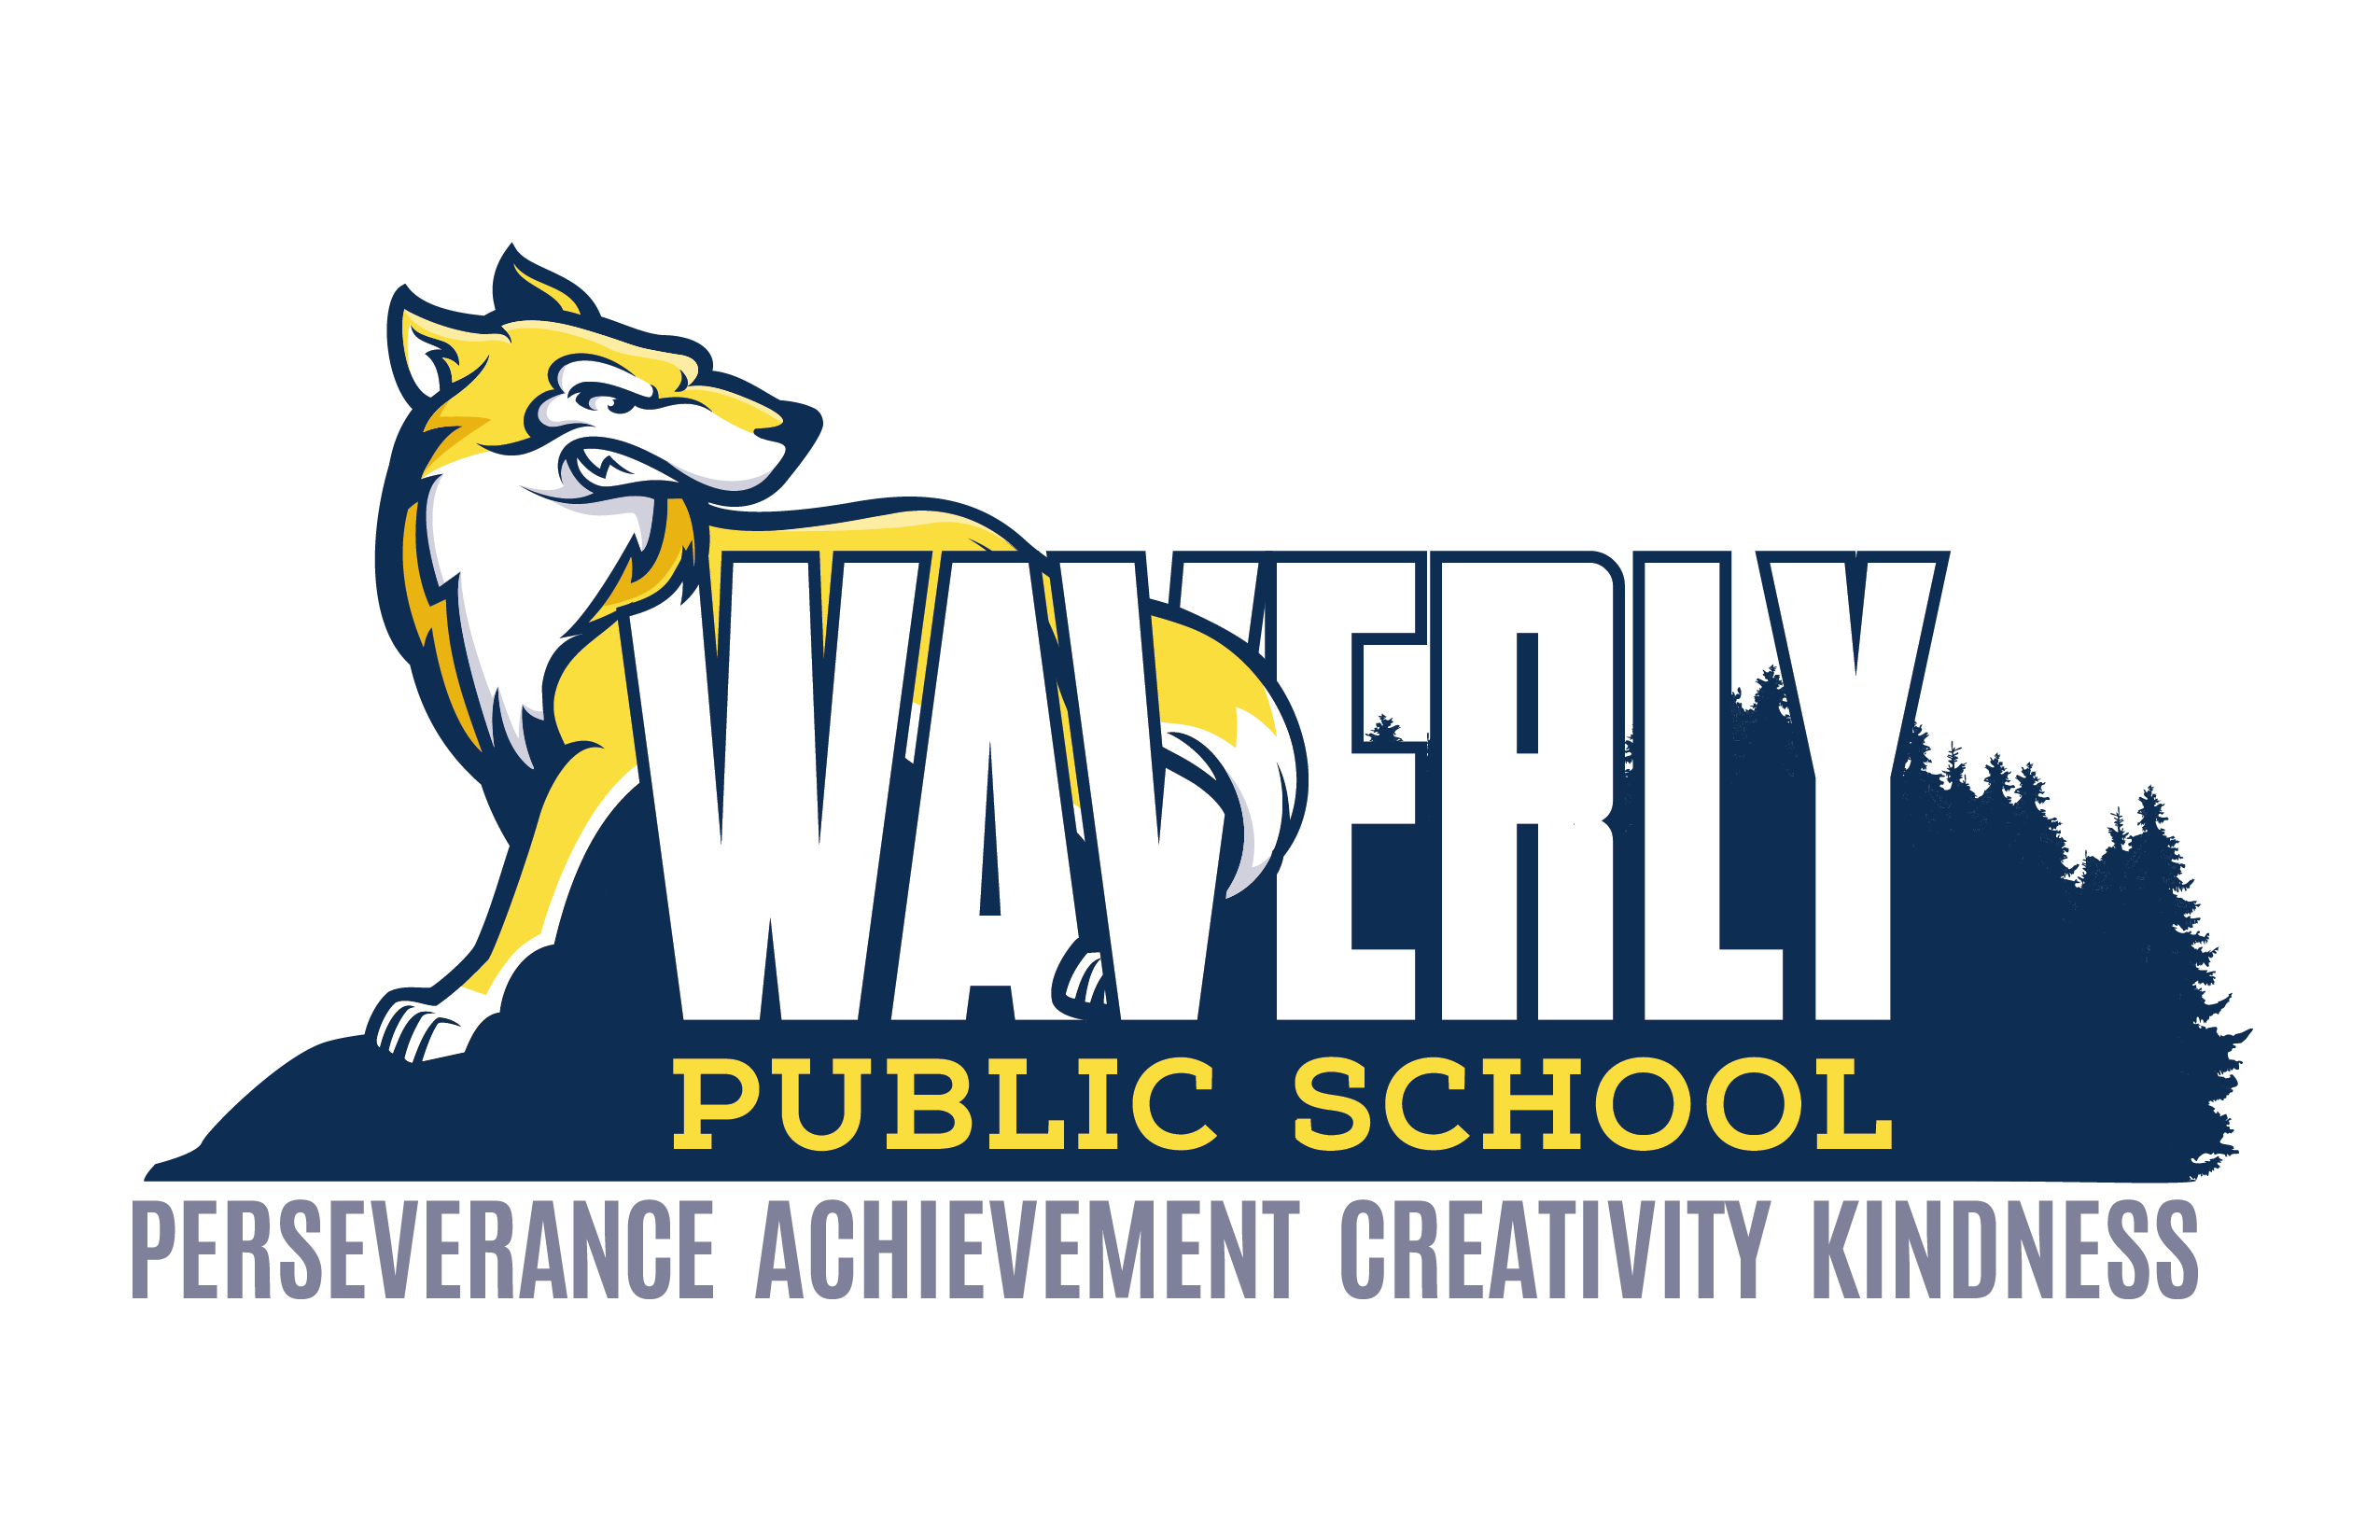 Waverly Public School logo